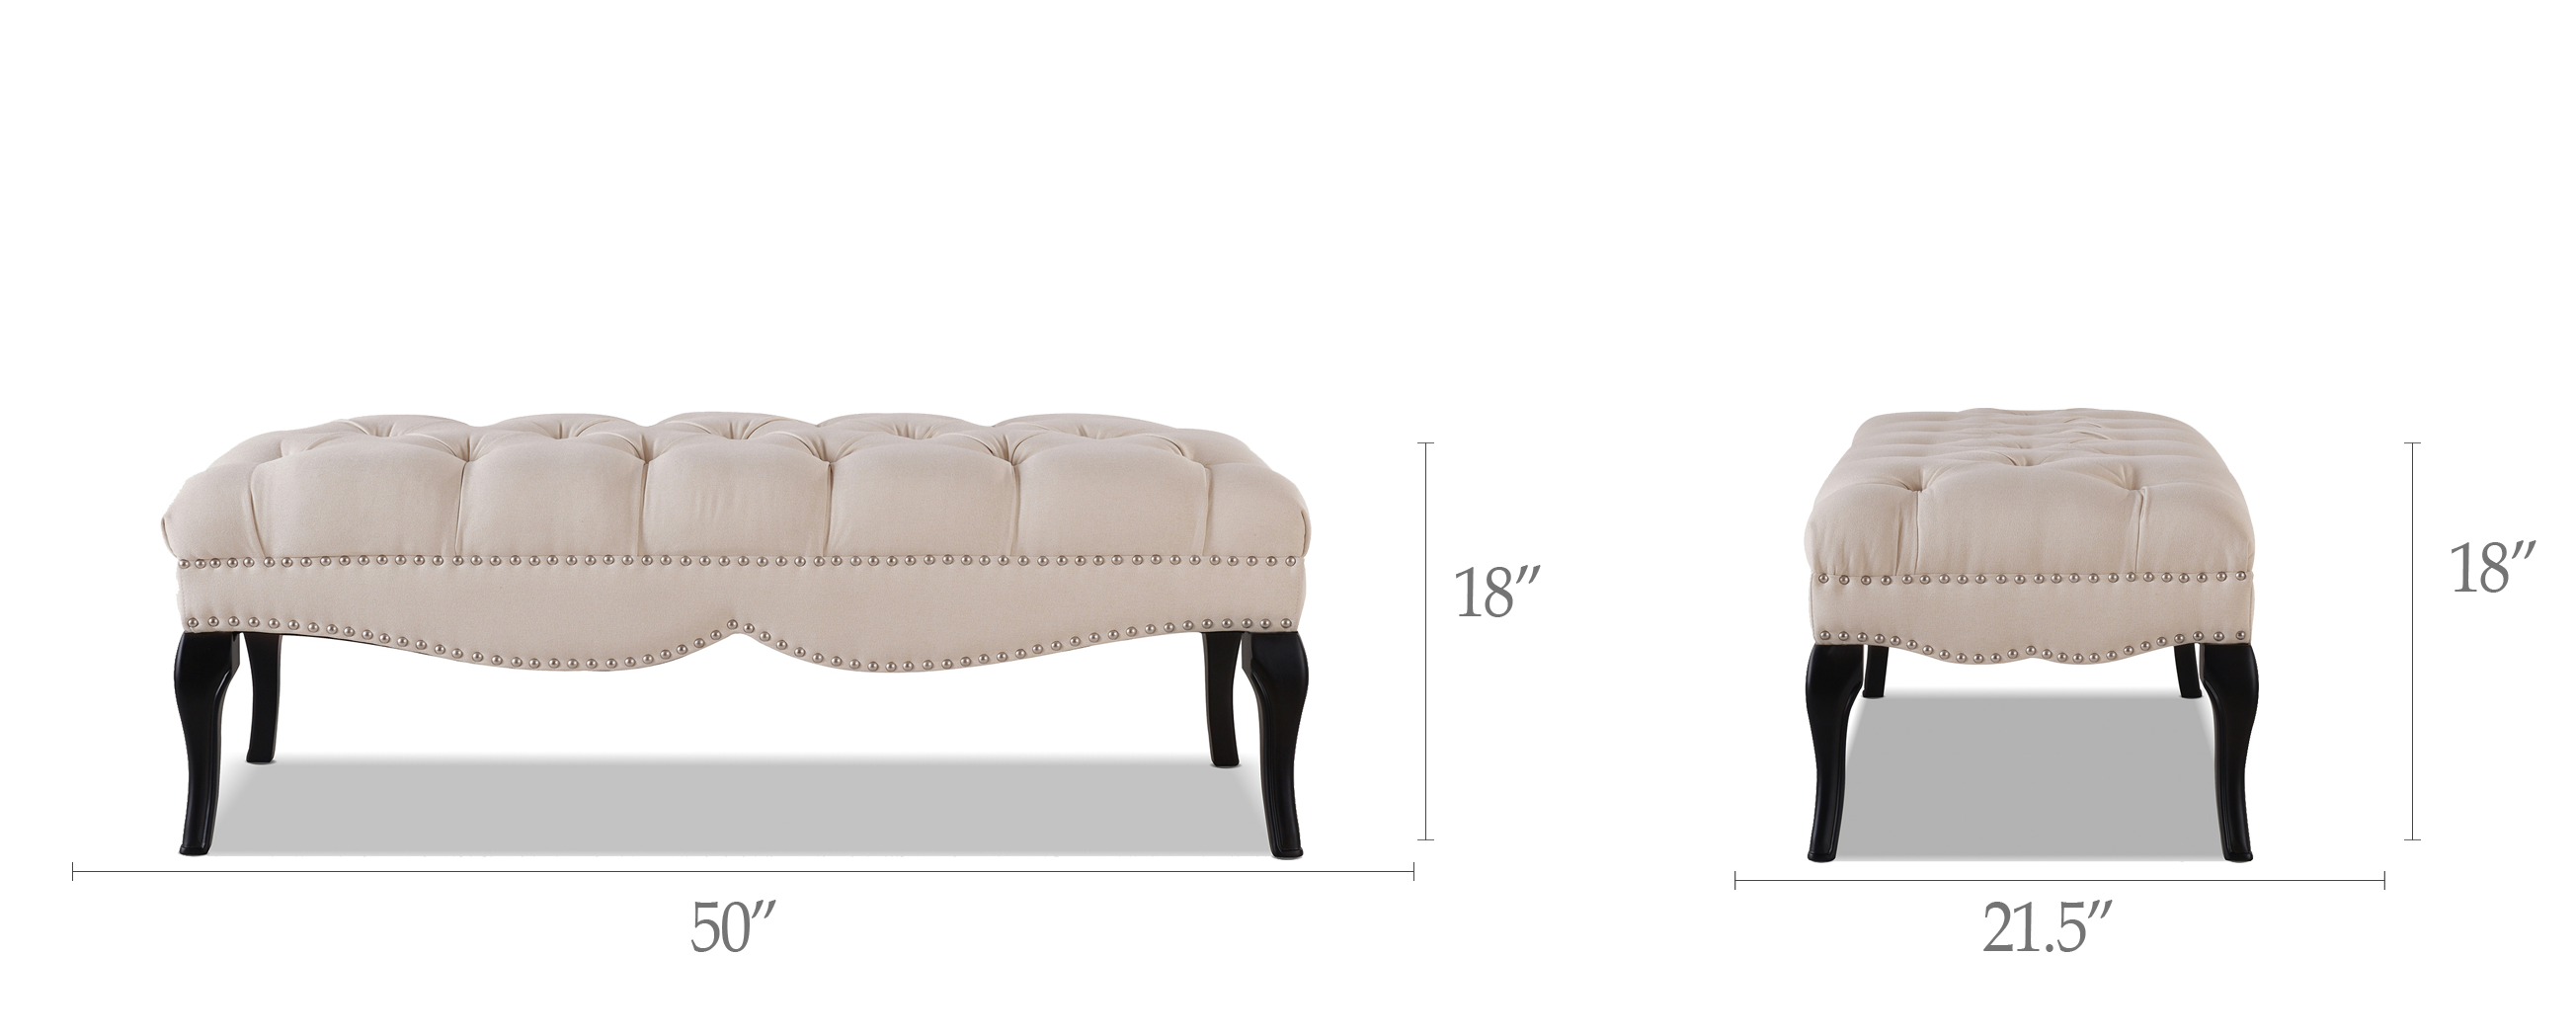 Camari Upholstered Bench